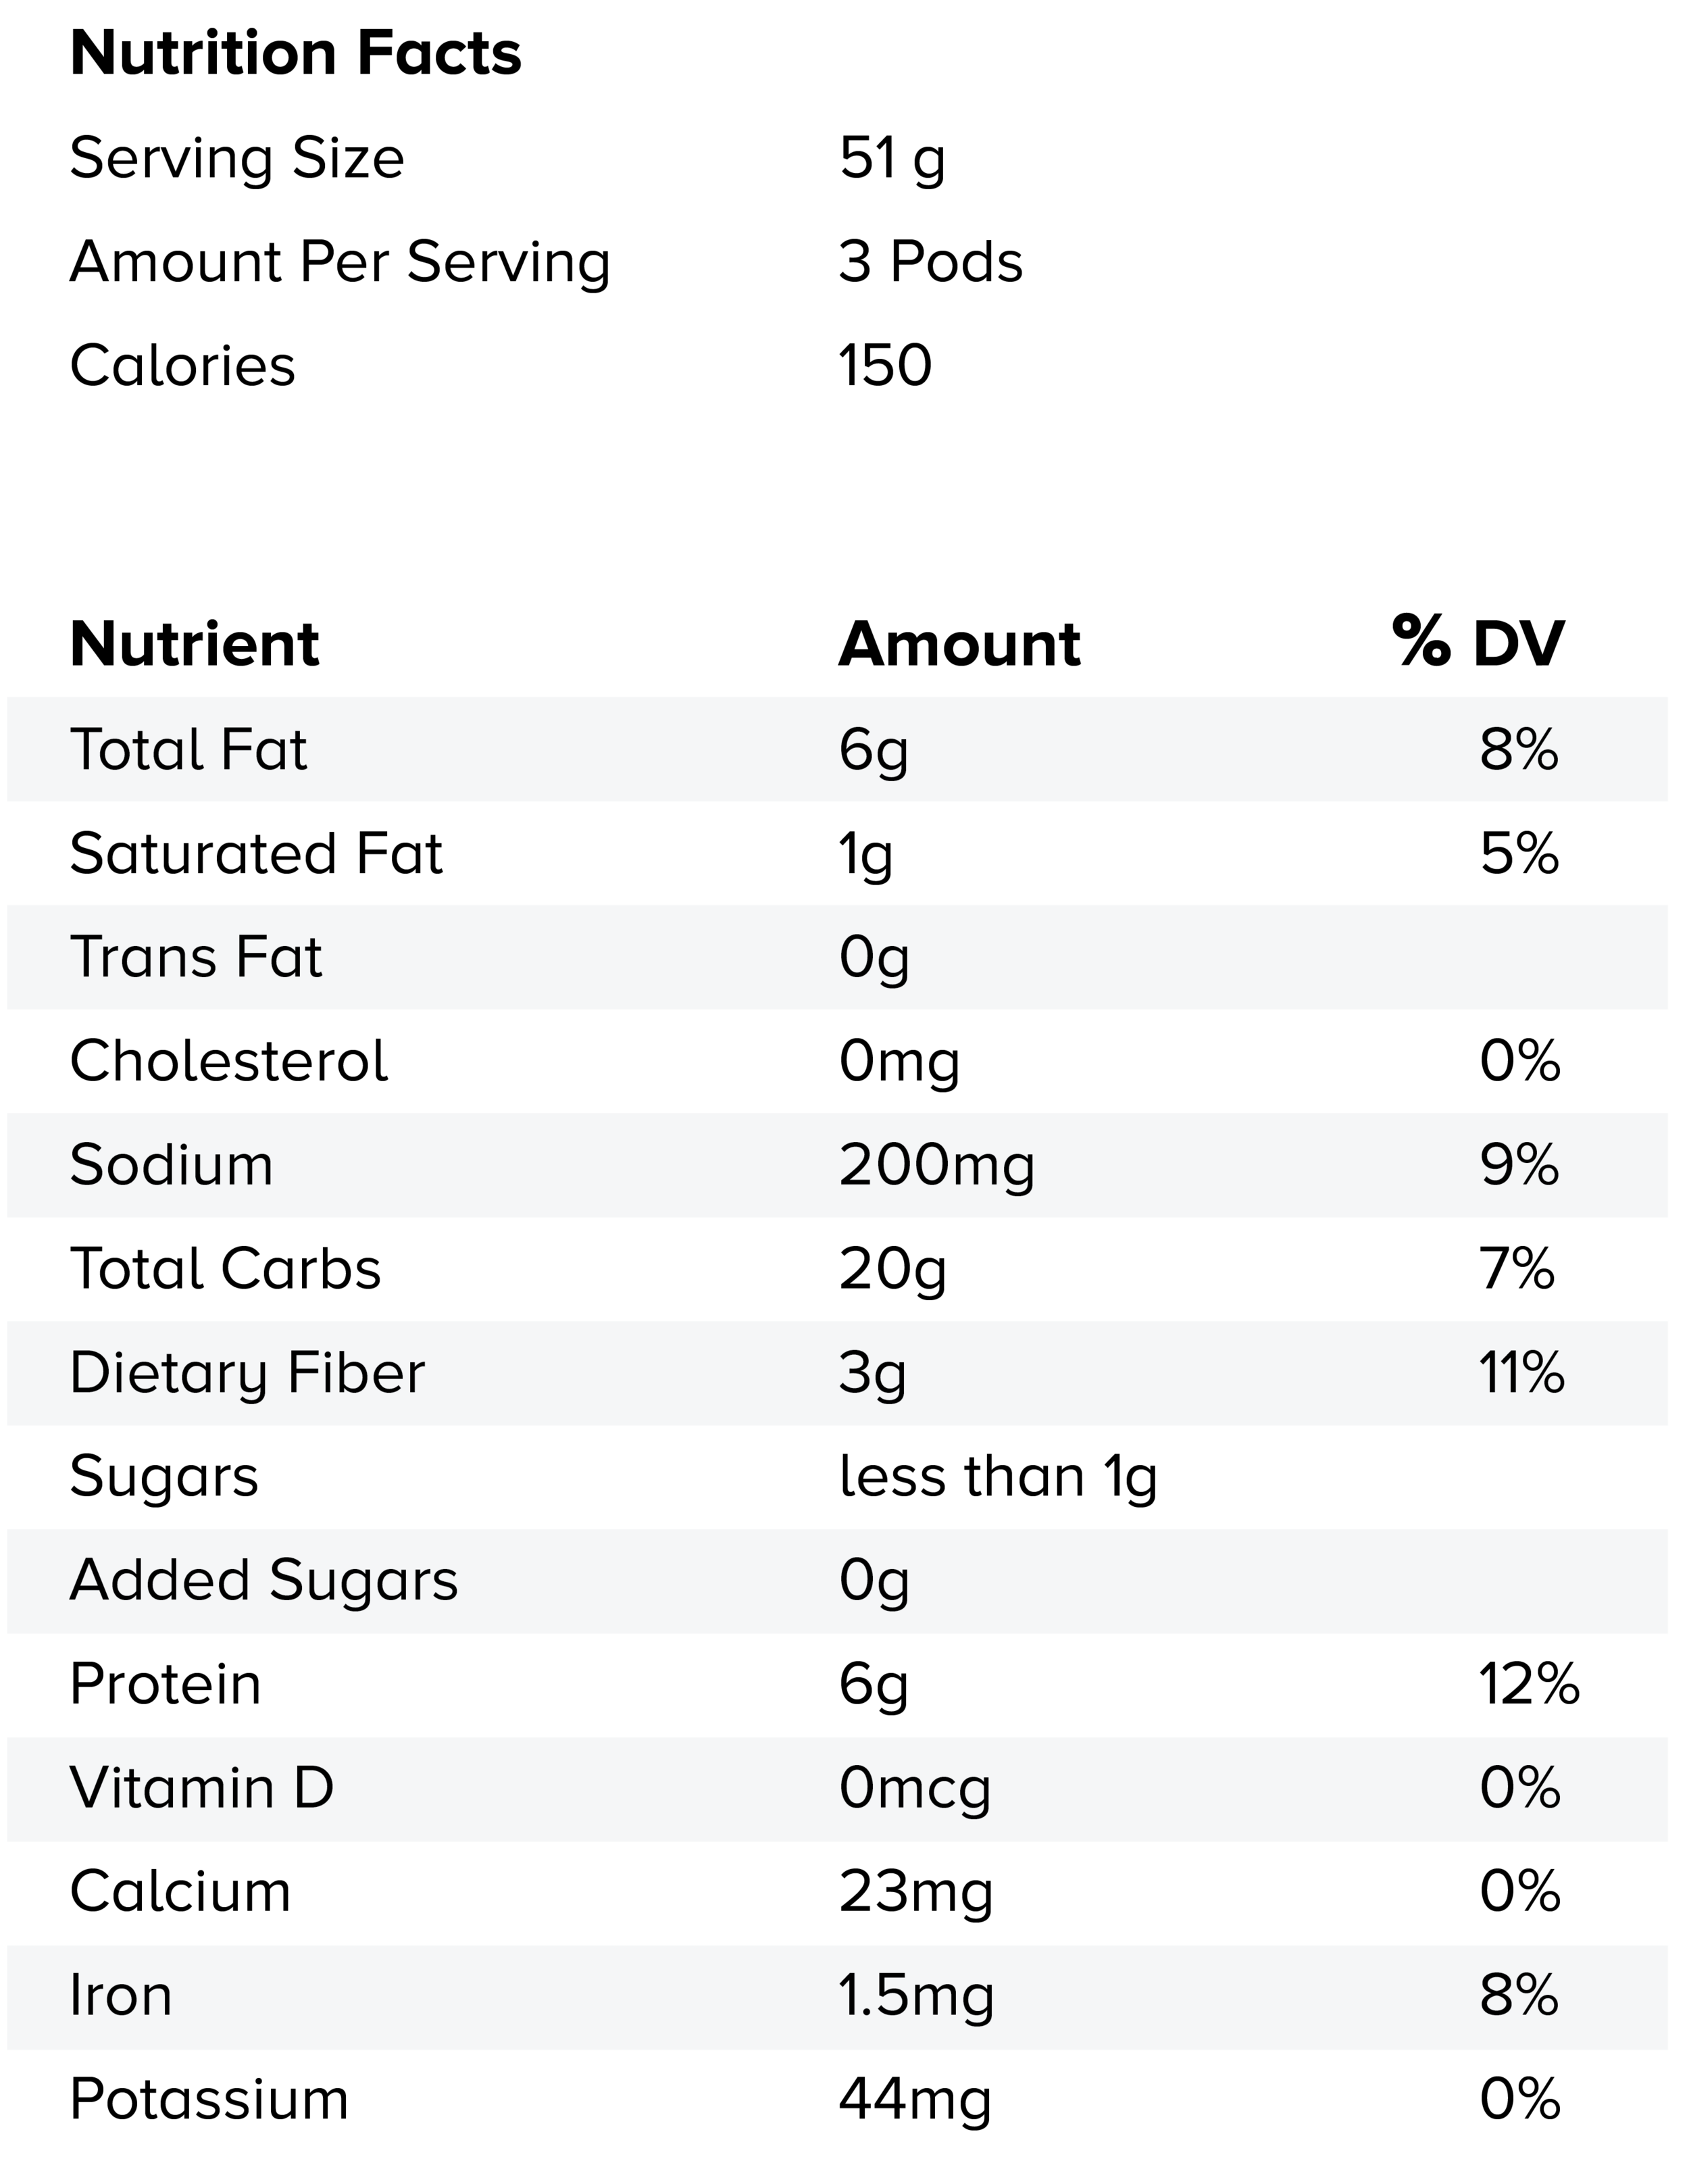 pod nutrition facts web 9-11-17-03.png